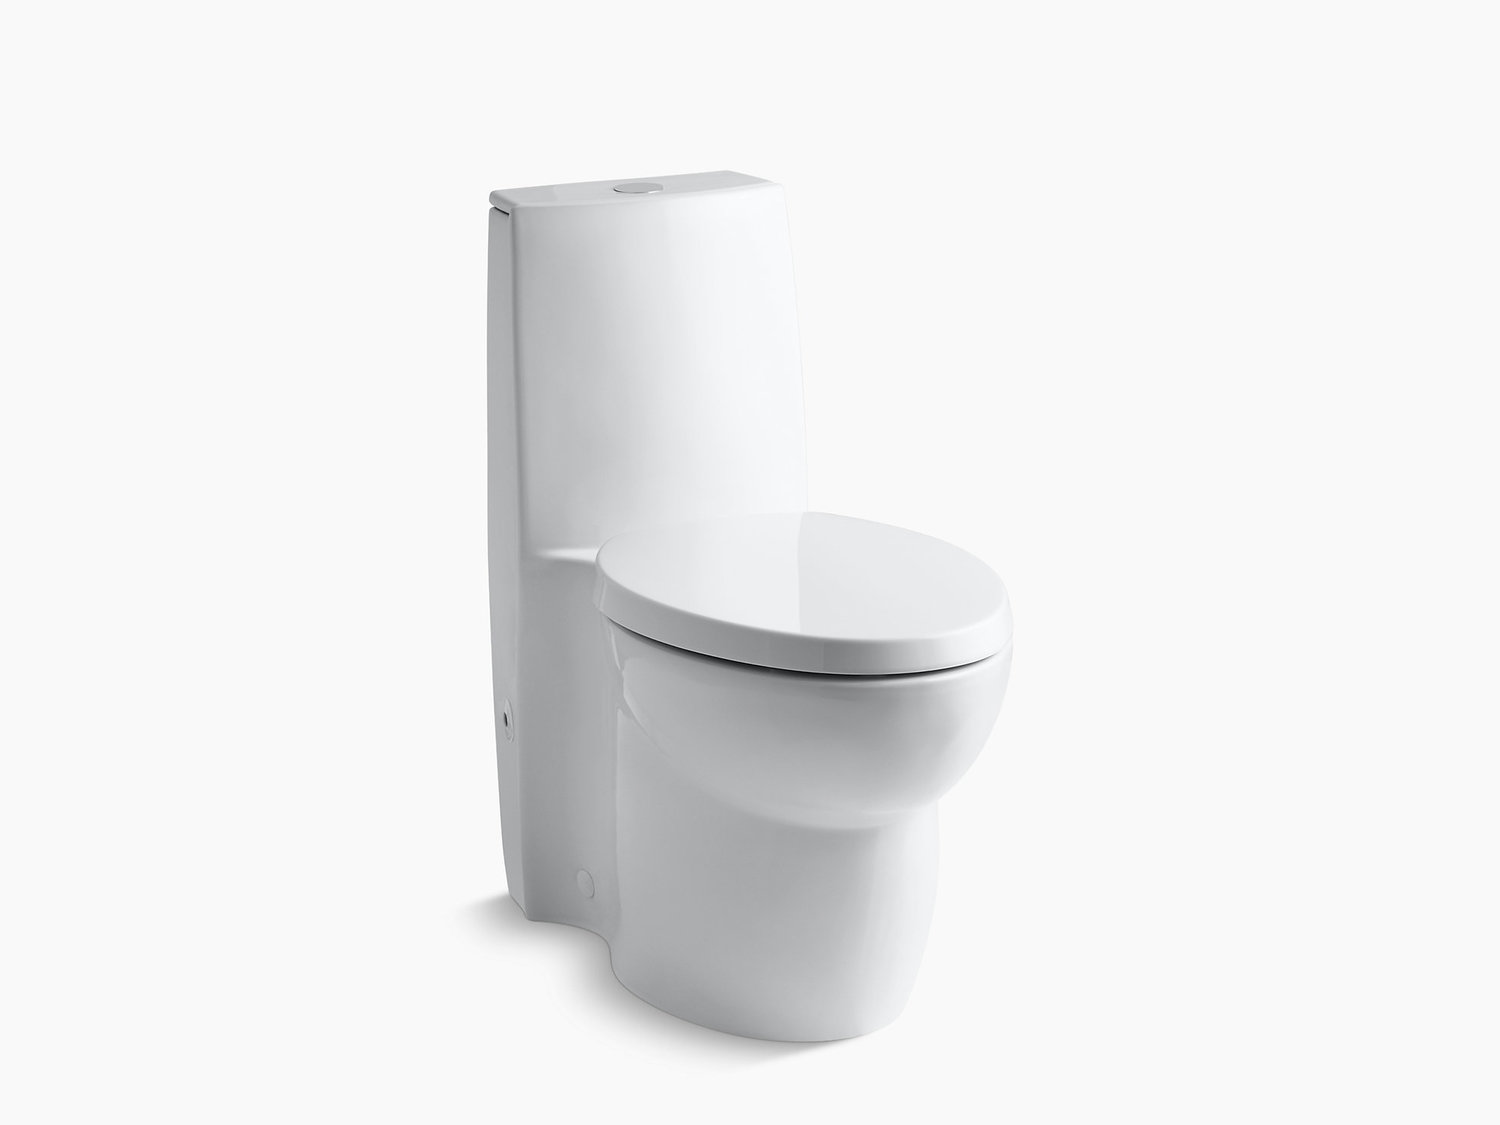 White Skirted One-piece Elongated Dual-flush Toilet With Top Actuator and Saile Quiet-close Toilet Seat With Quick-release Functionality